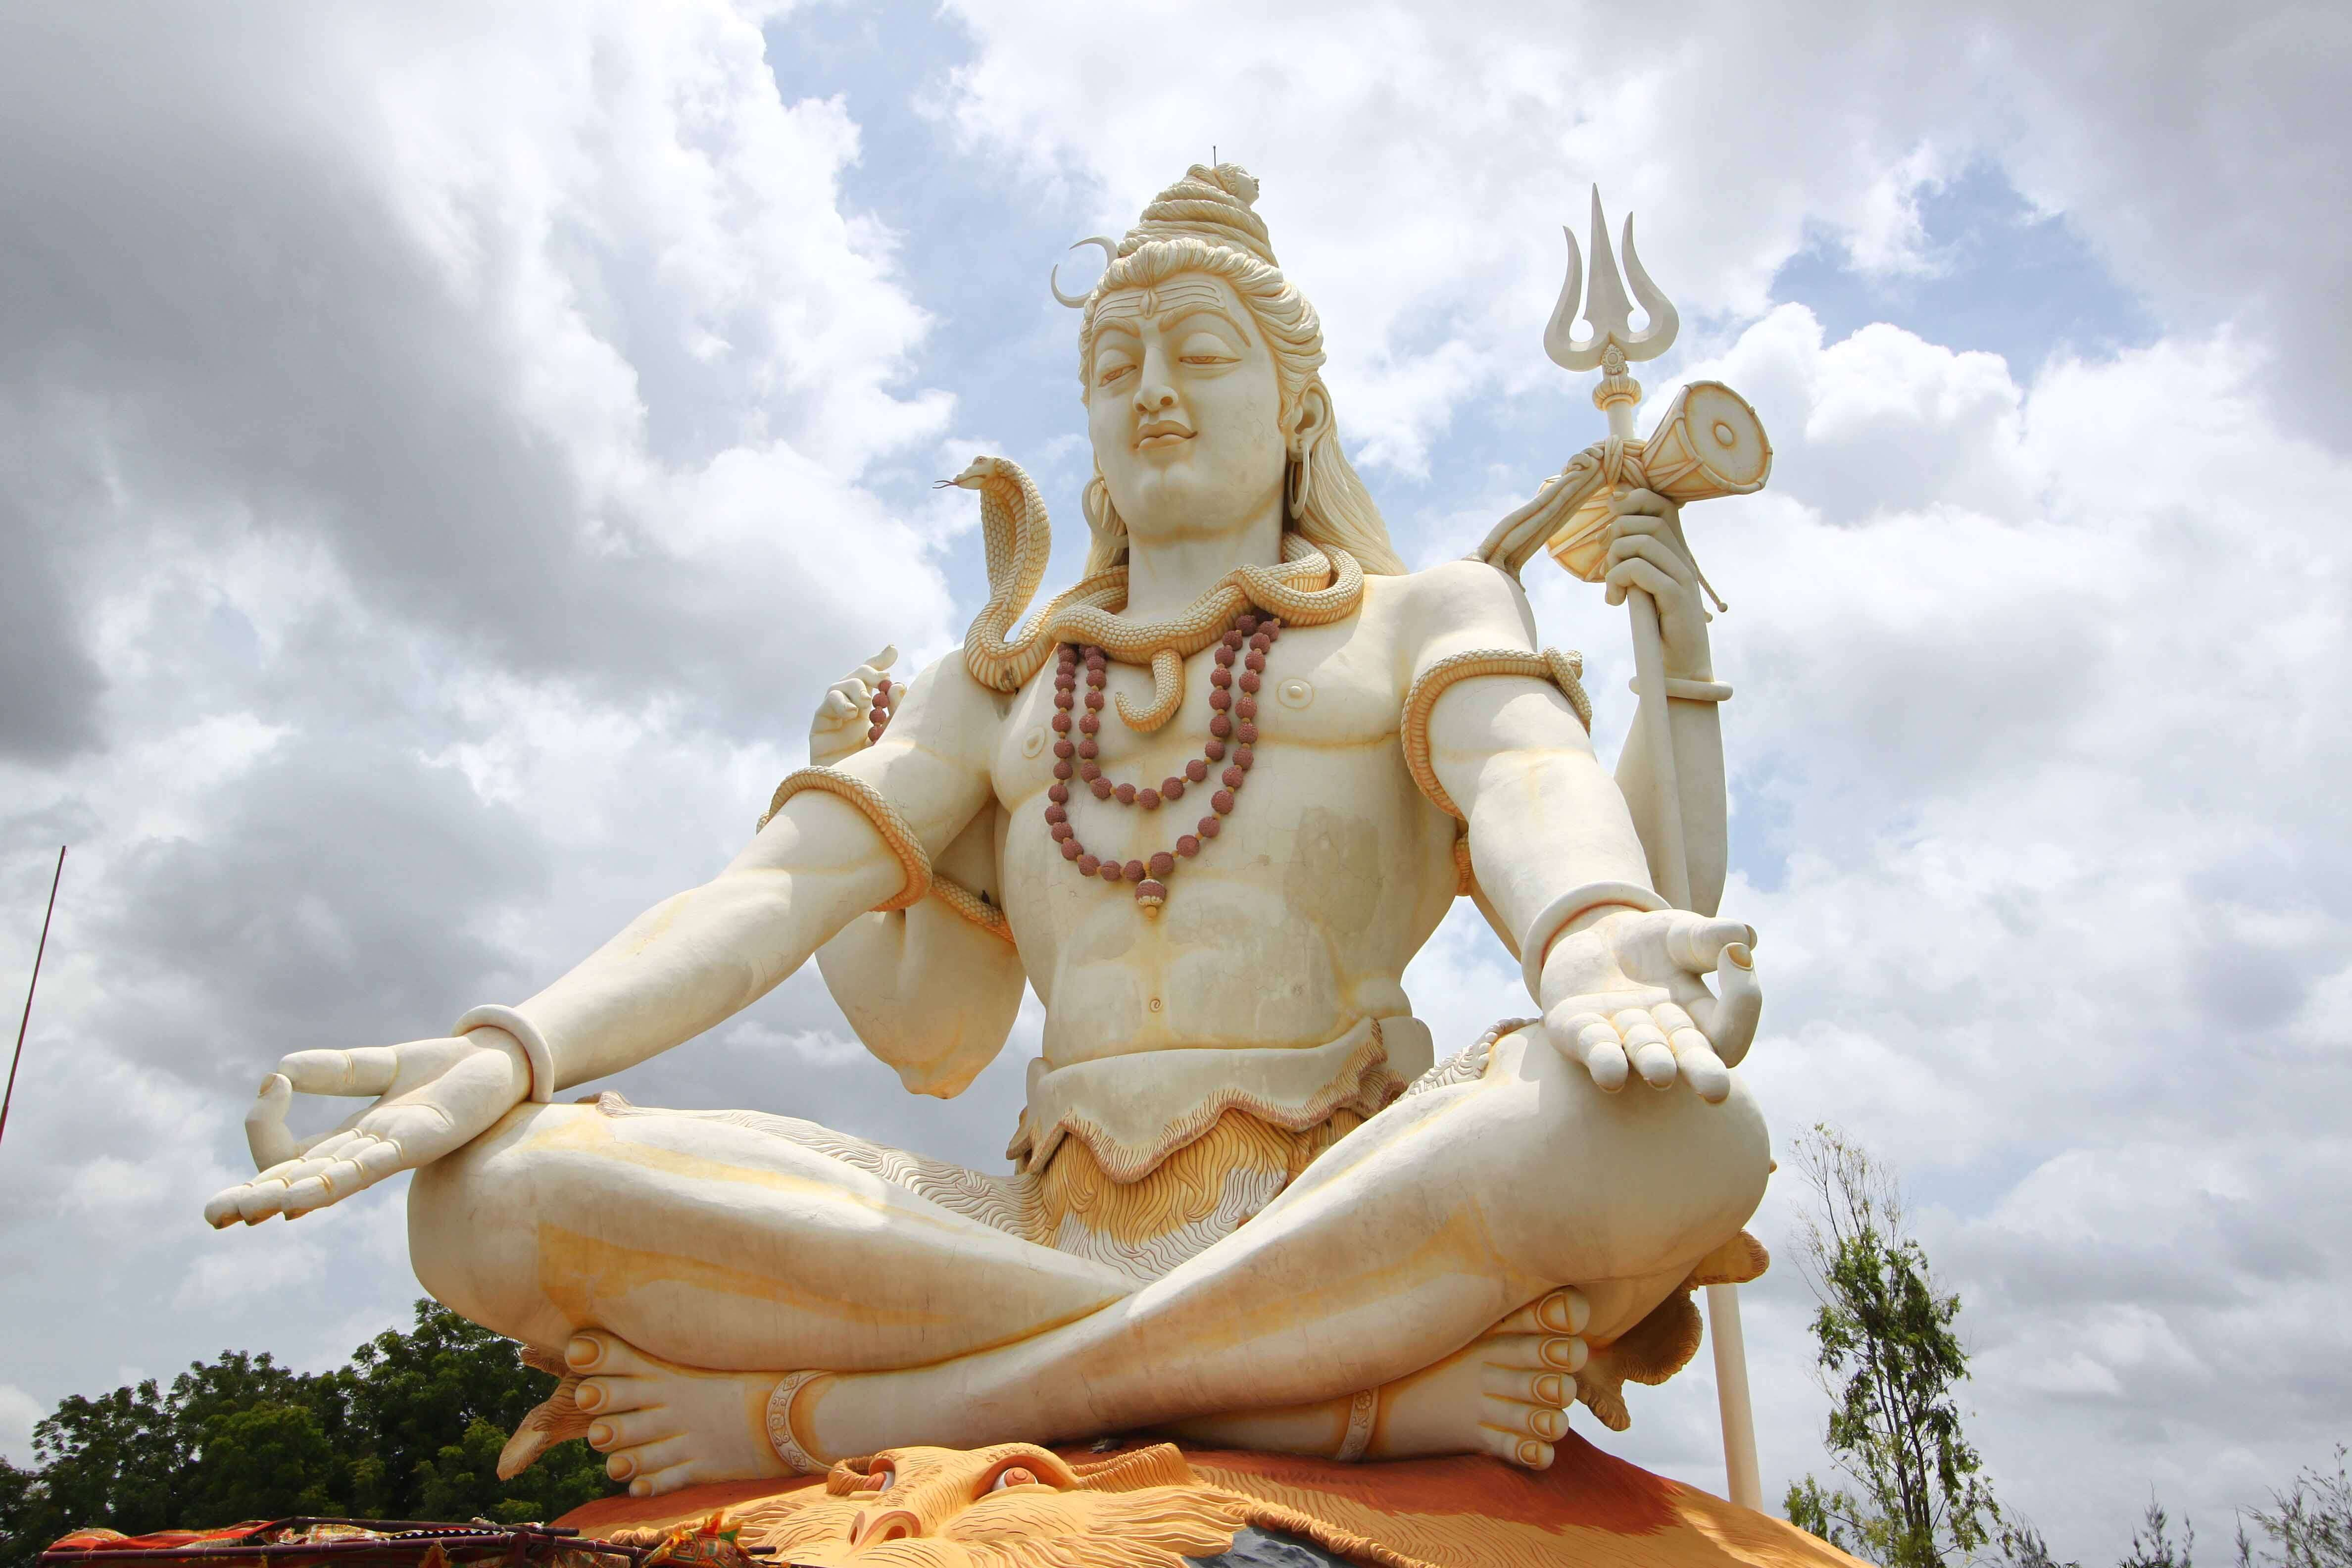 Lord Shiva Images भगवान् शिवजी के चित्र (Large Size) (6)